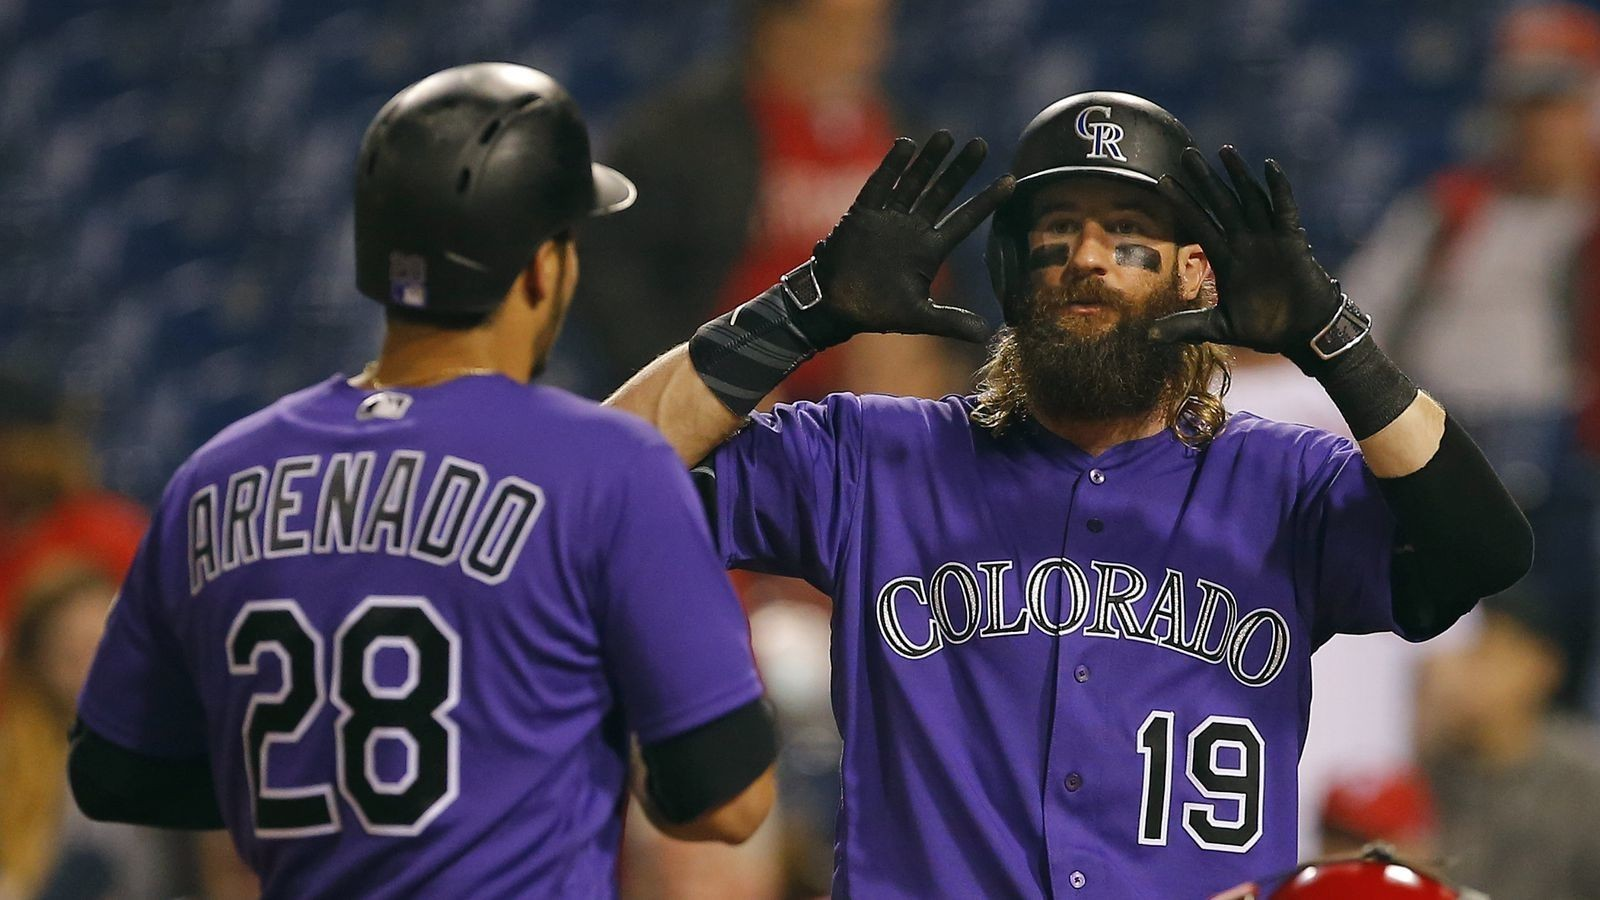 The Colorado Rockies are drawing attention from around the country